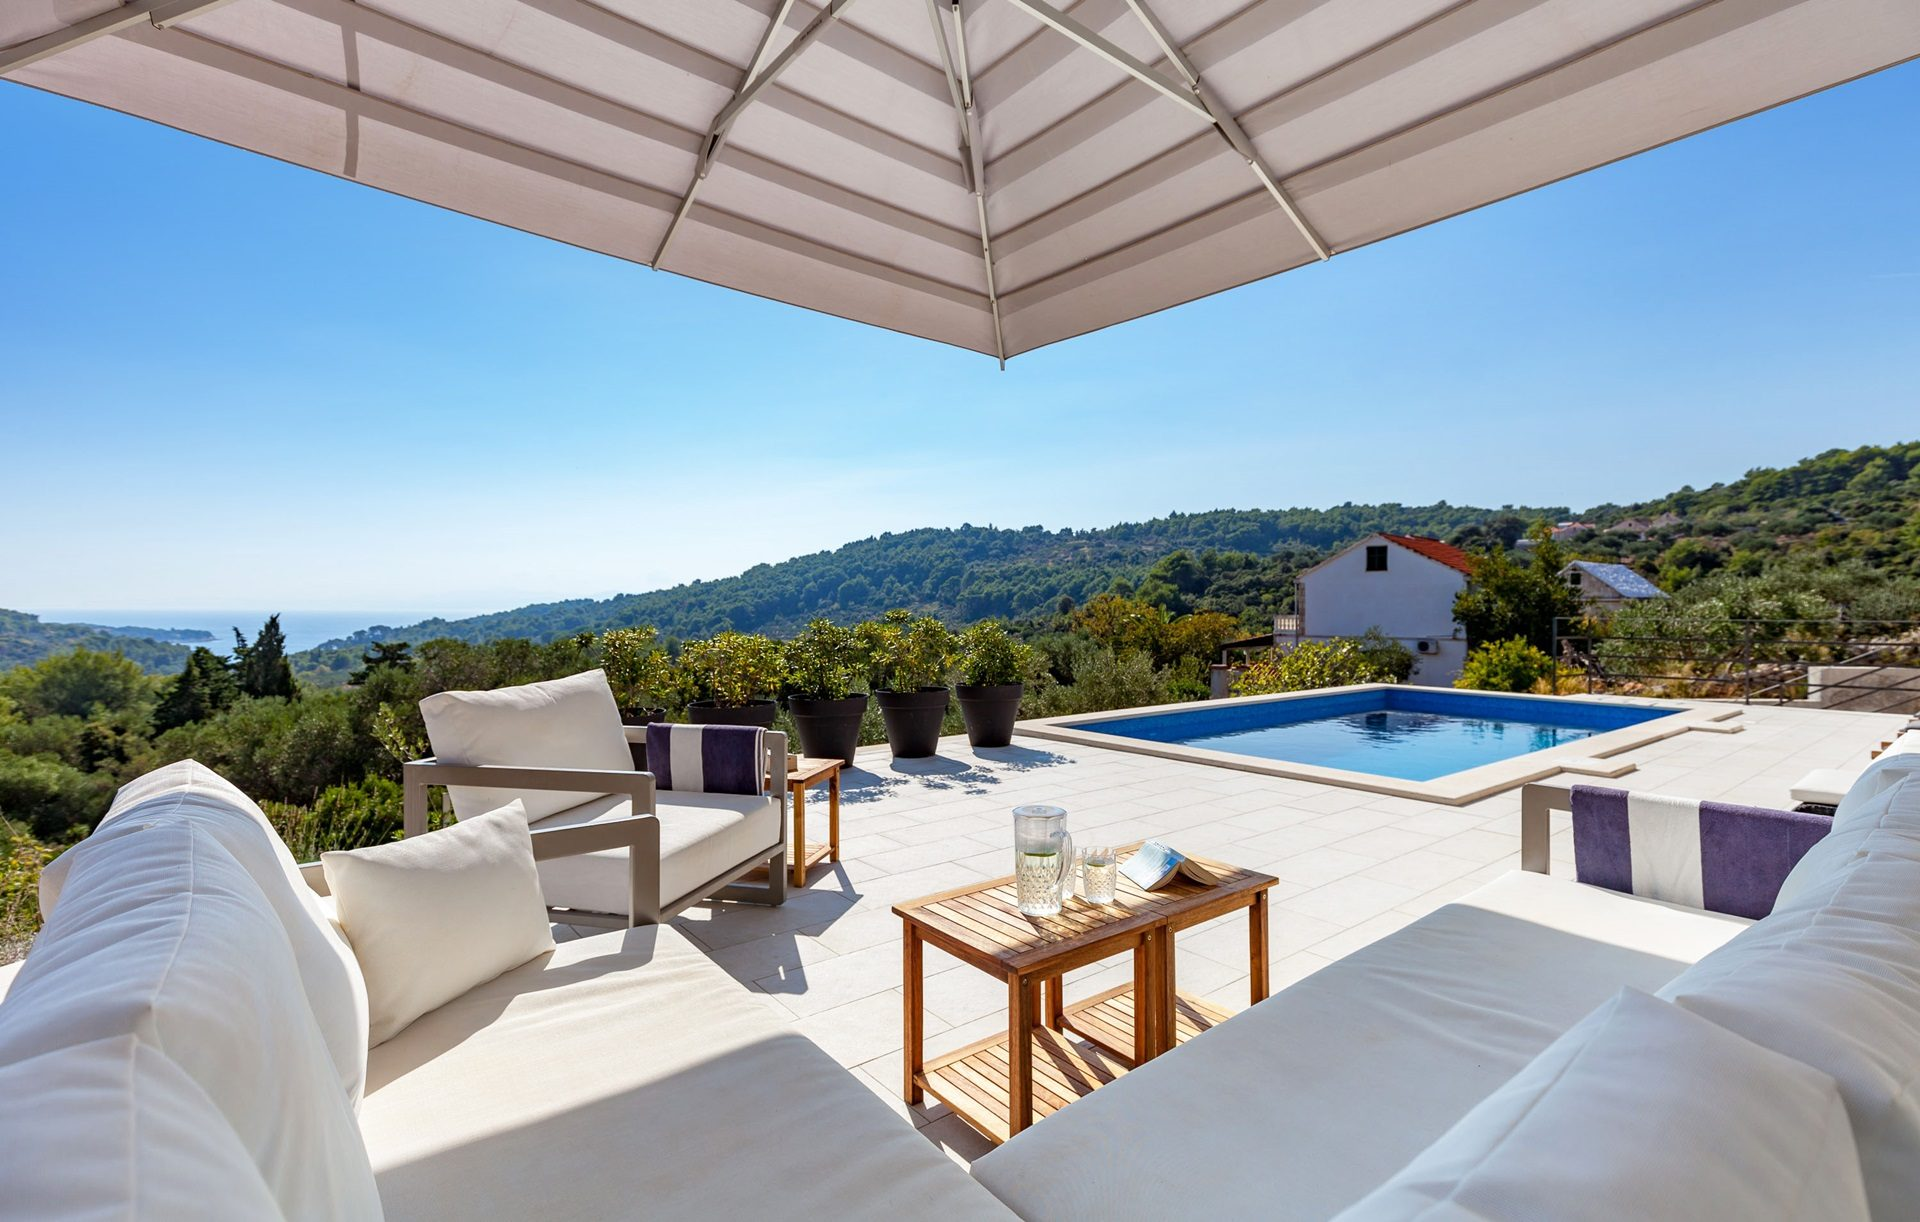 location villa luxe, Croatie, CROBRA 305